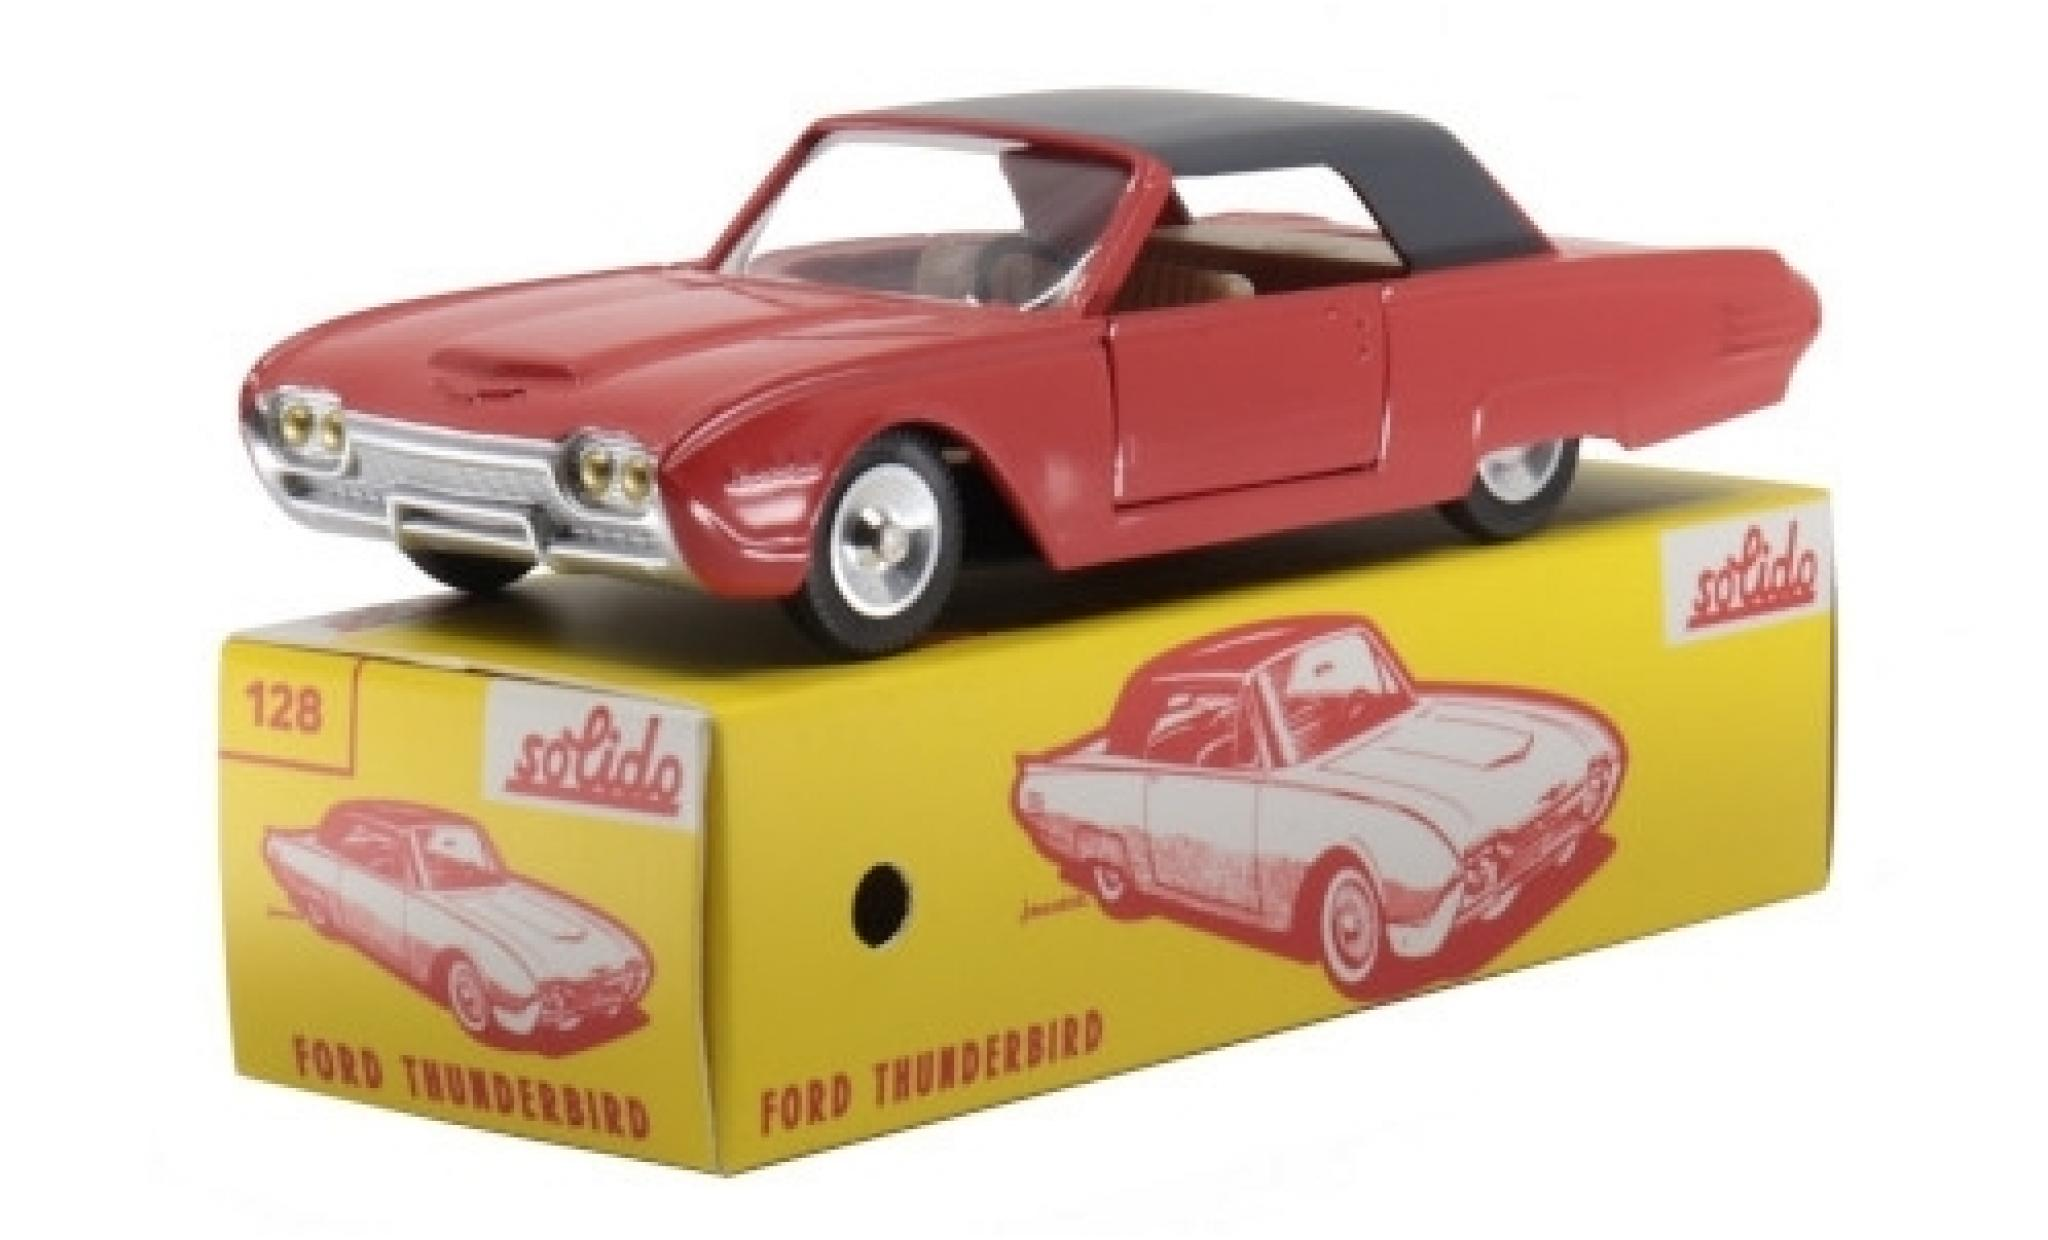 Ford Thunderbird 1/43 Solido Hardtop orange/grey 1963